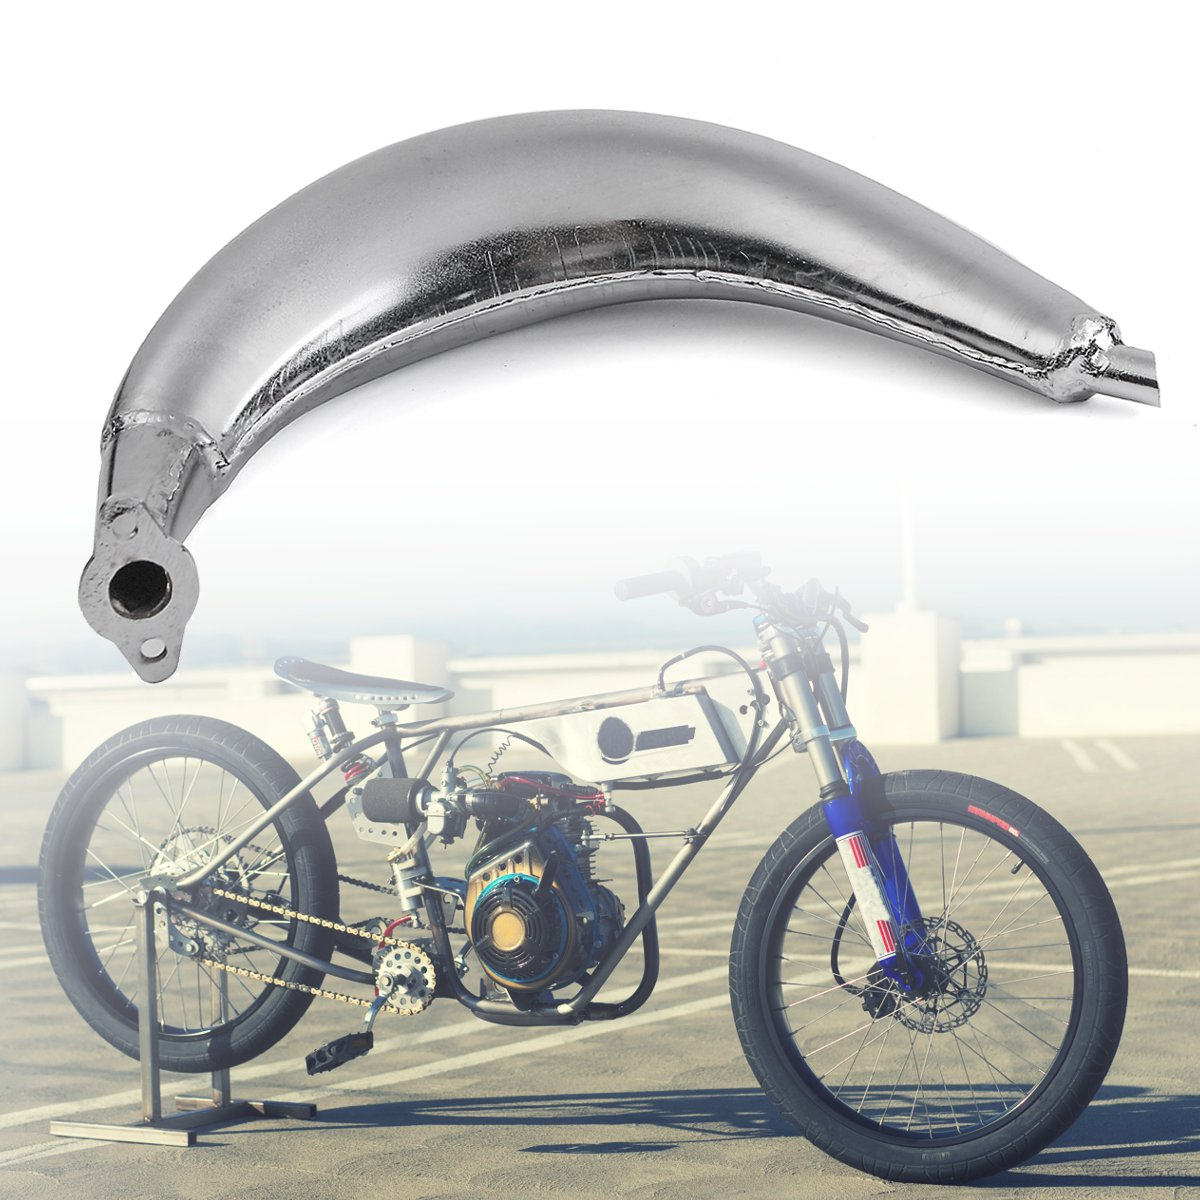 Chrome Muffler Exhaust Pipe For 80cc 66cc 49cc Motorize